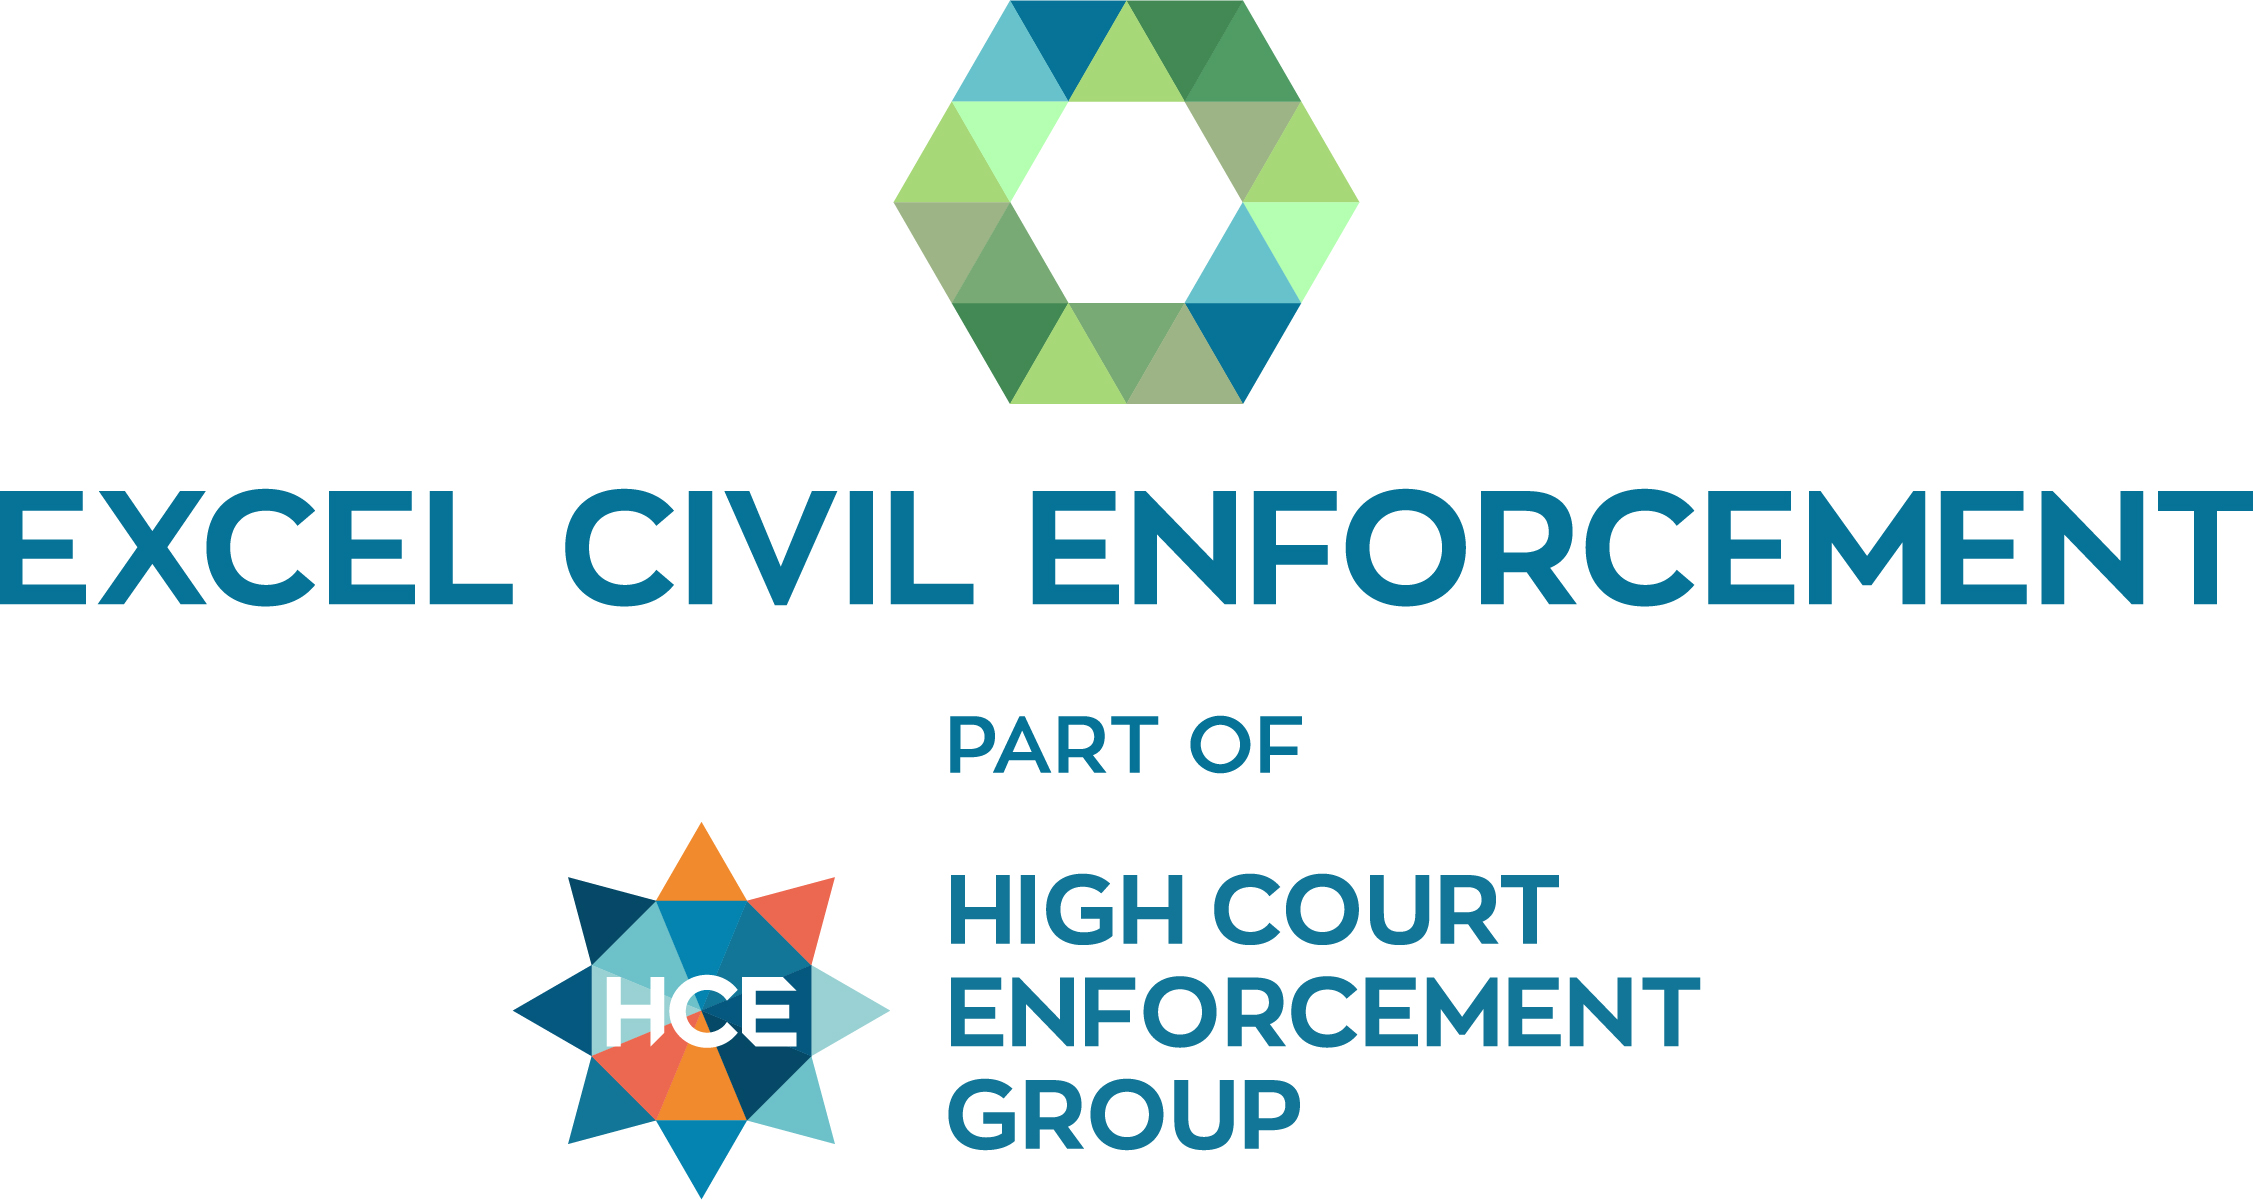 Excel Civil Enforcement Limited